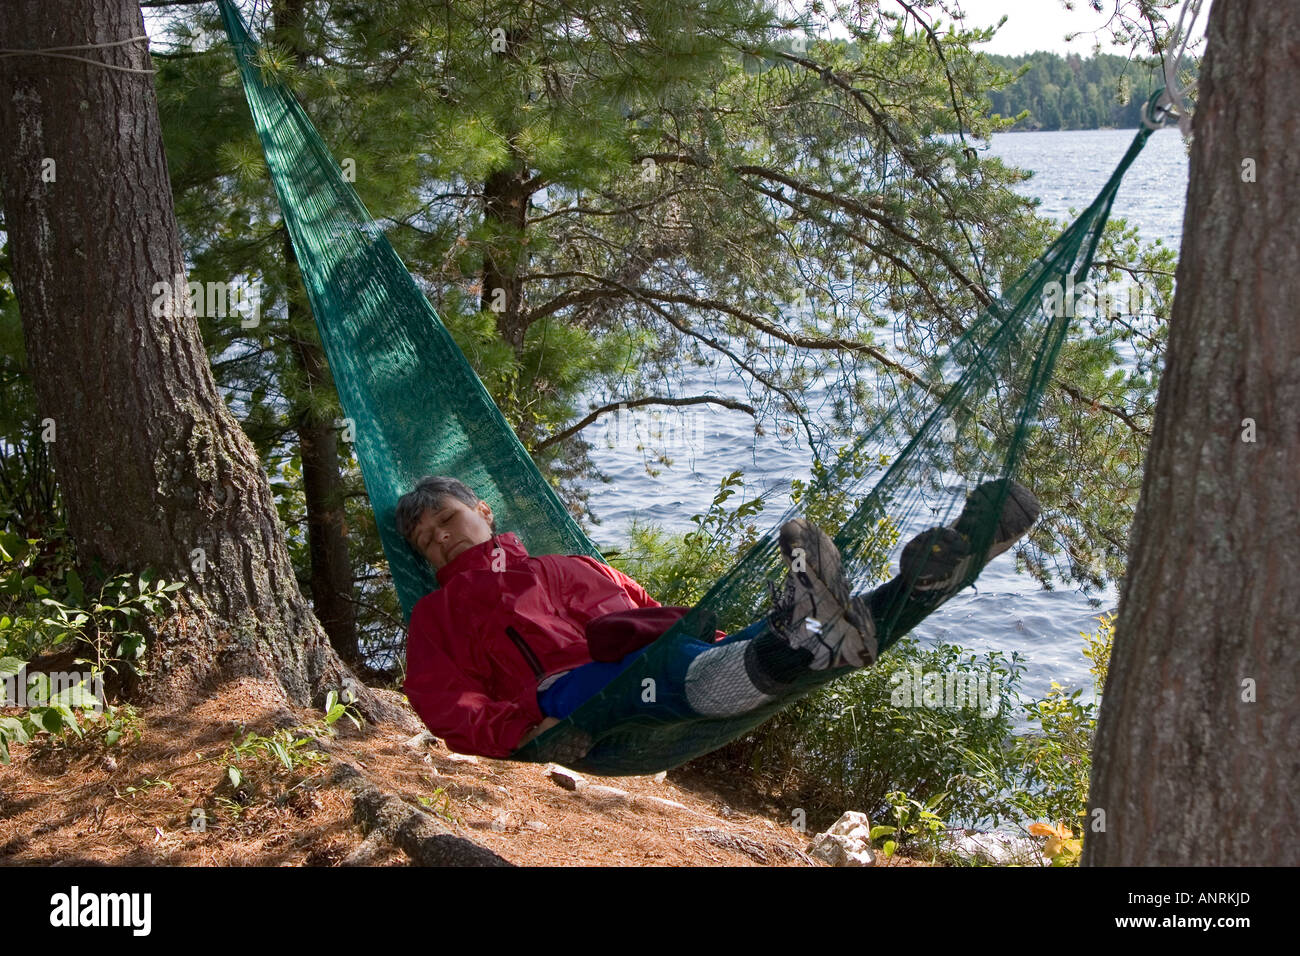 quetico provincial park ontario florence monnier sleeps in a hammock during a canoe camping trip quetico provincial park ontario florence monnier sleeps in a      rh   alamy